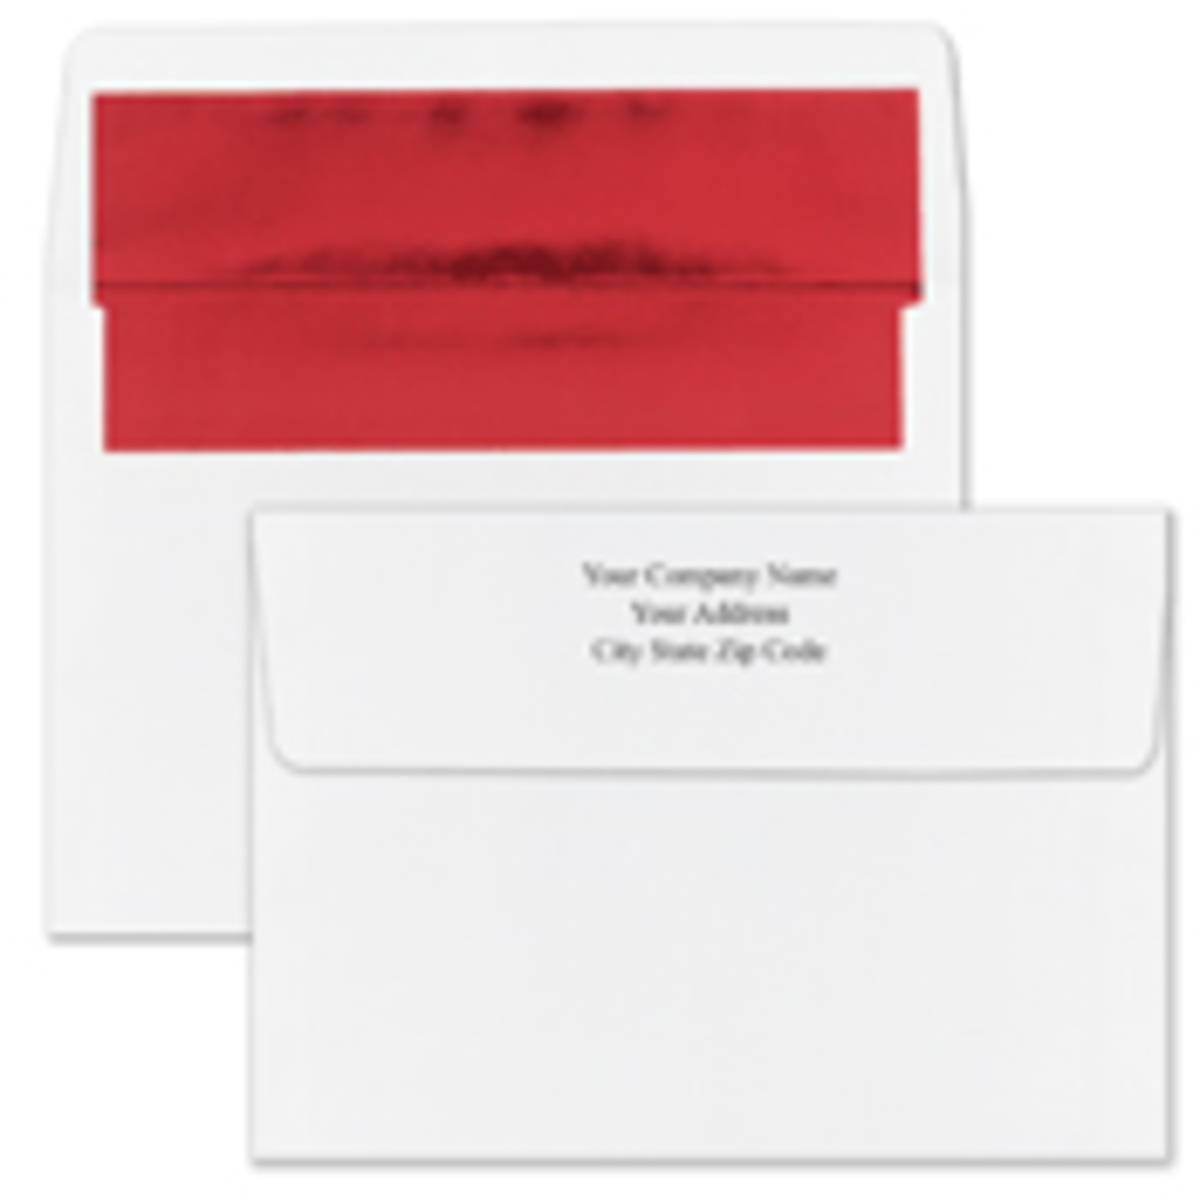 Recycled Shiny Red Foil Lined White Envelope - Printed